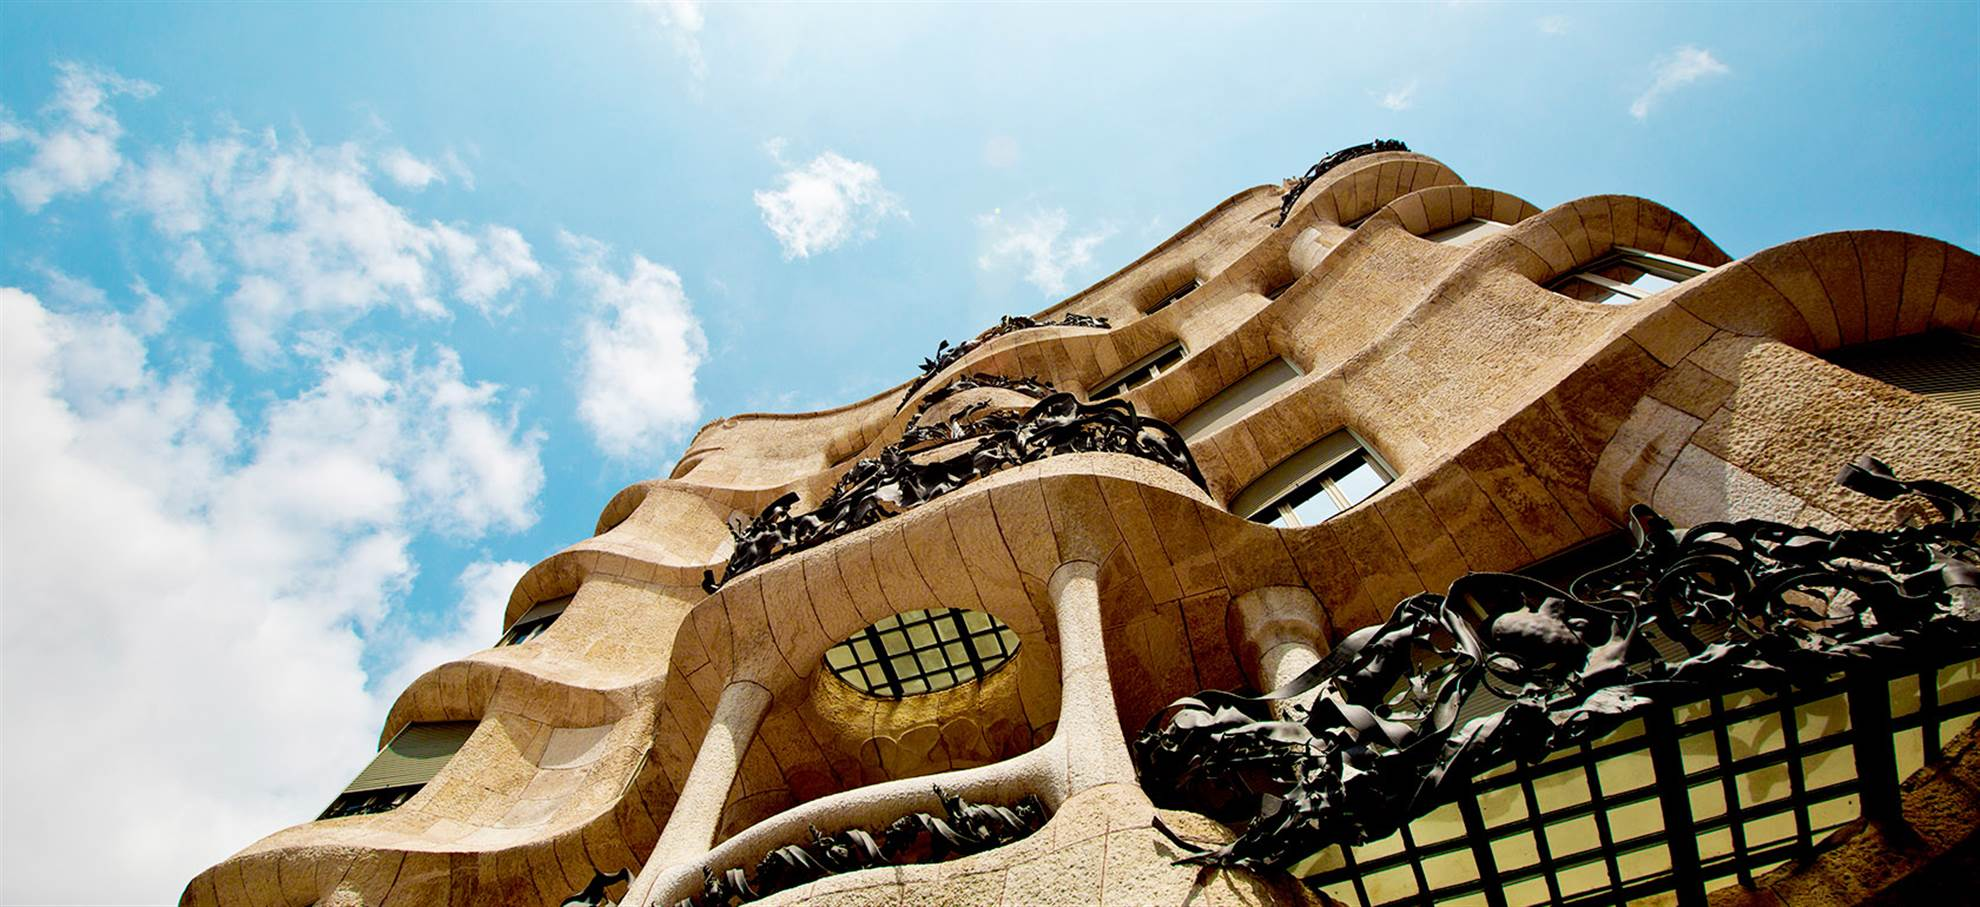 Ticket Casa Mila & Hop on Hop off